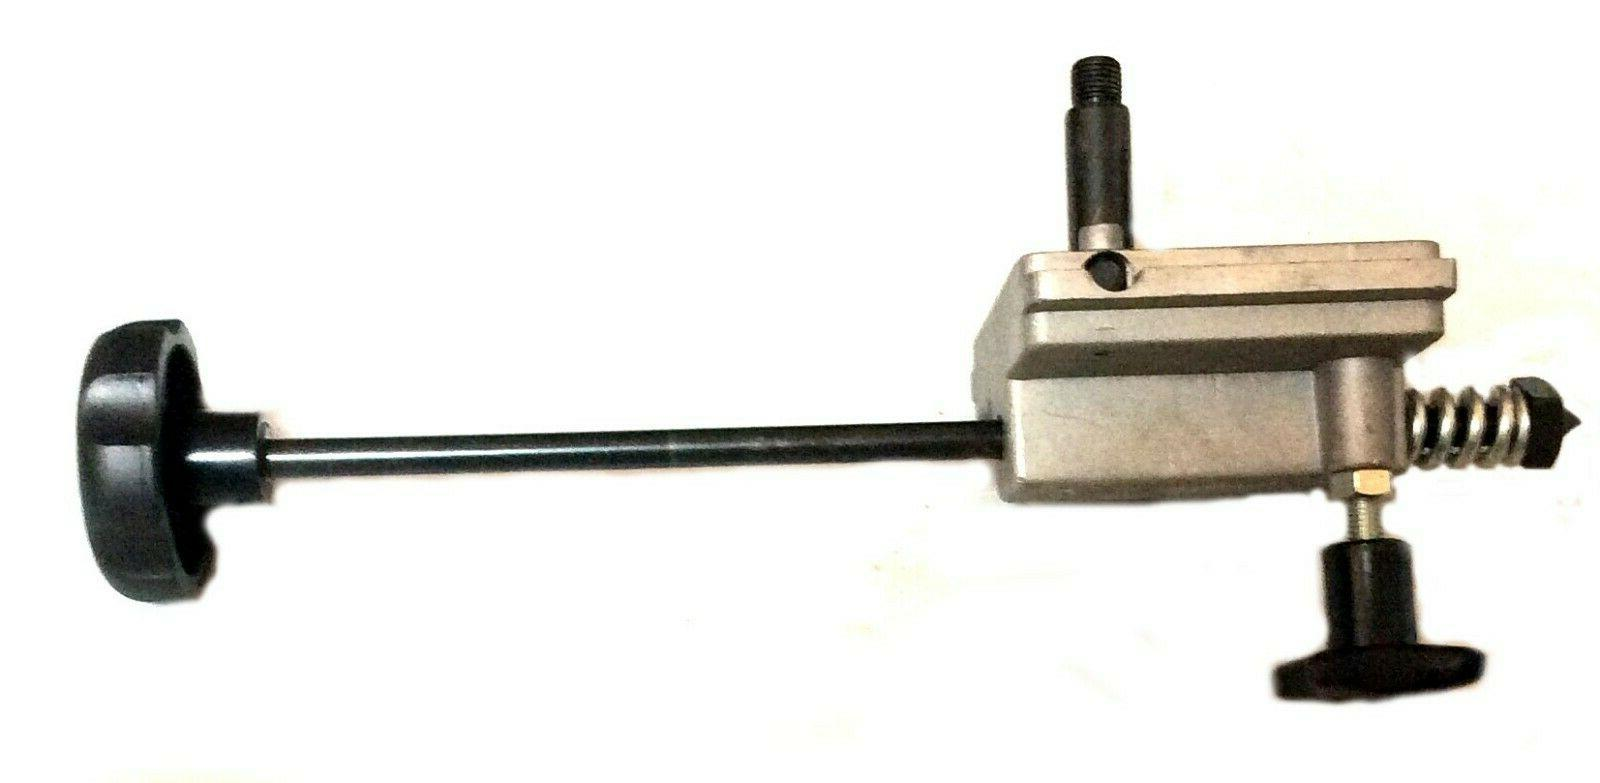 BAND SAW UPPER HINGE FOR INCH BAND SAW